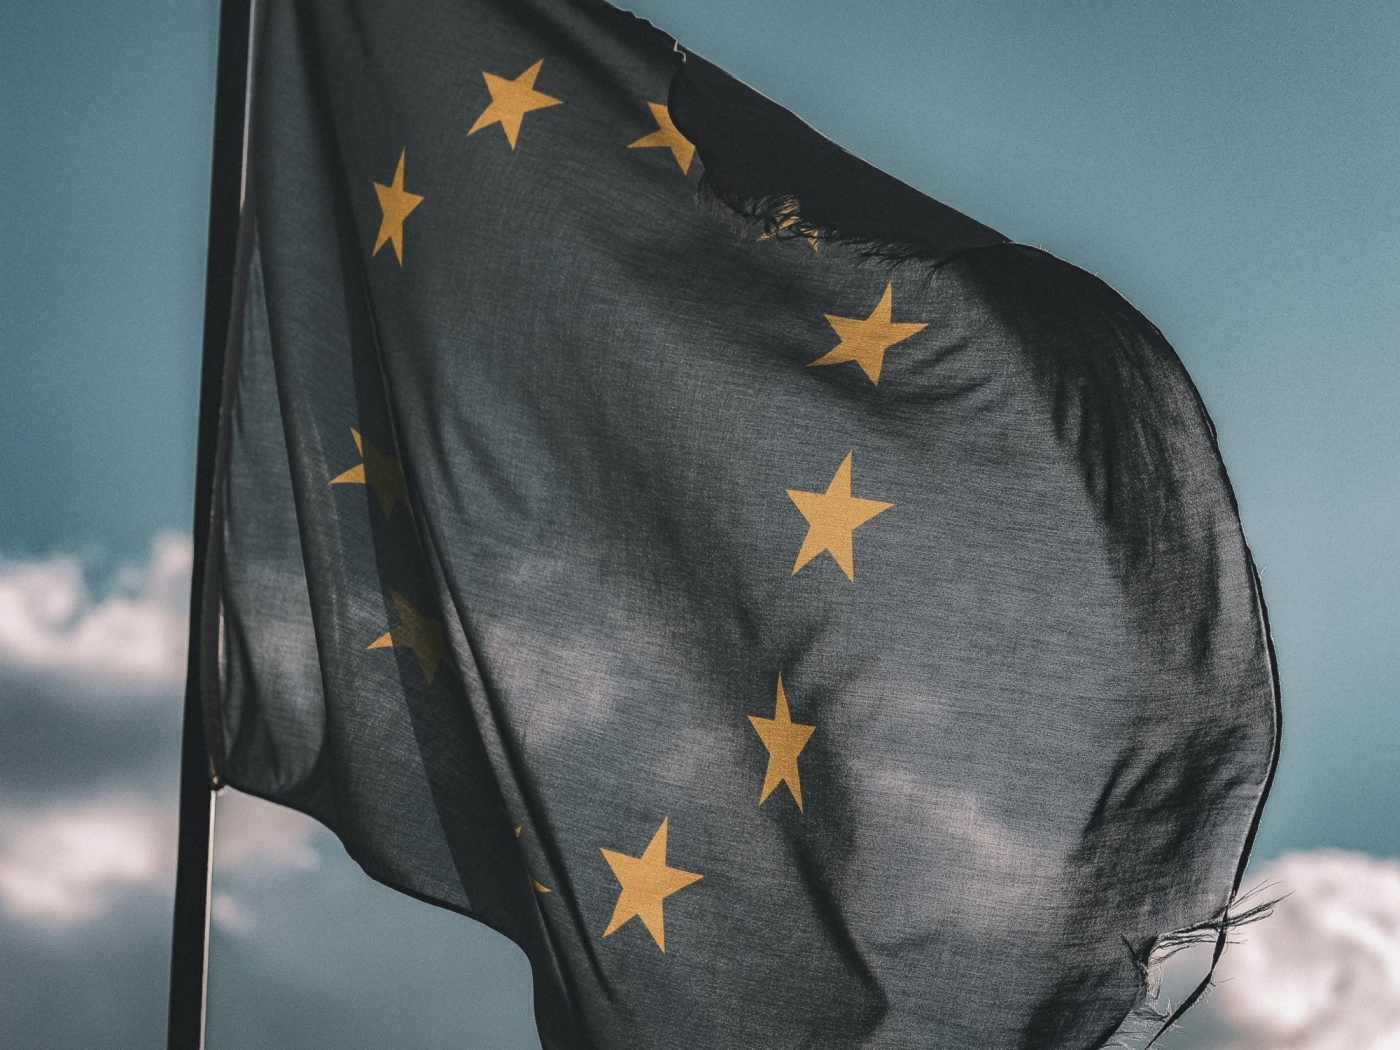 close-up-photography-of-european-flag-1743364-scal